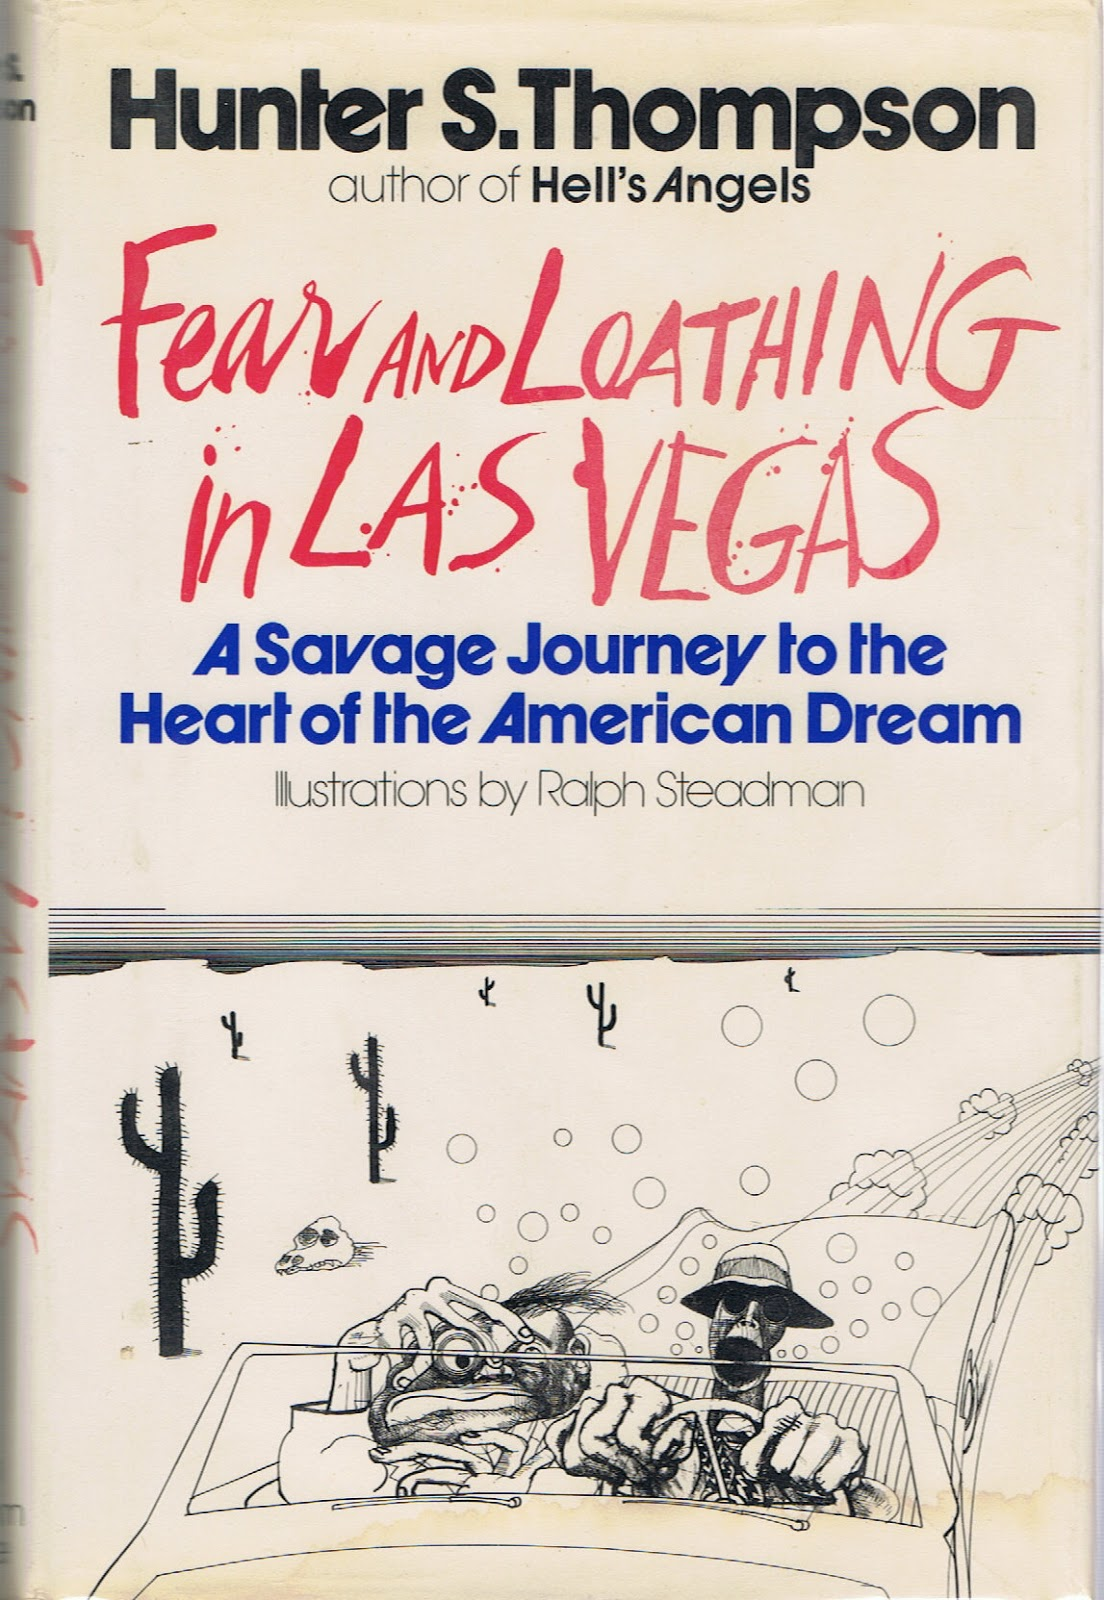 Fear and Loathing in Las Vegas - Books on Drugs | Utter Bewakoof